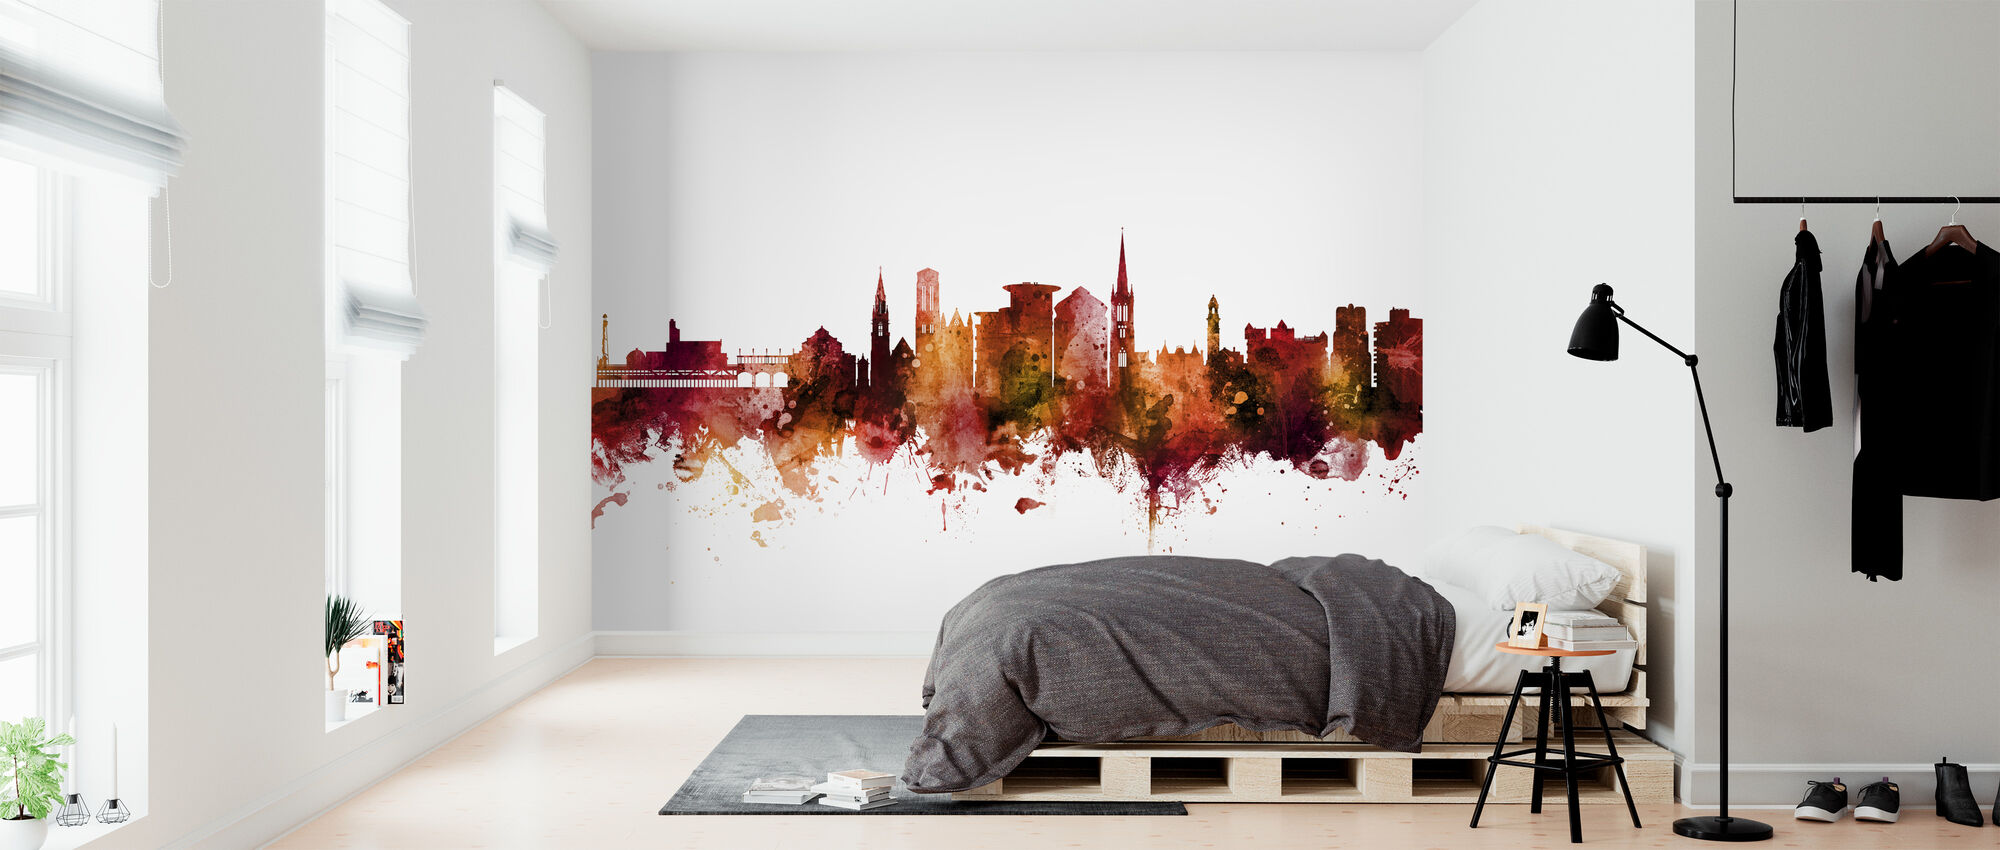 Bournemouth England Skyline - Wallpaper - Bedroom